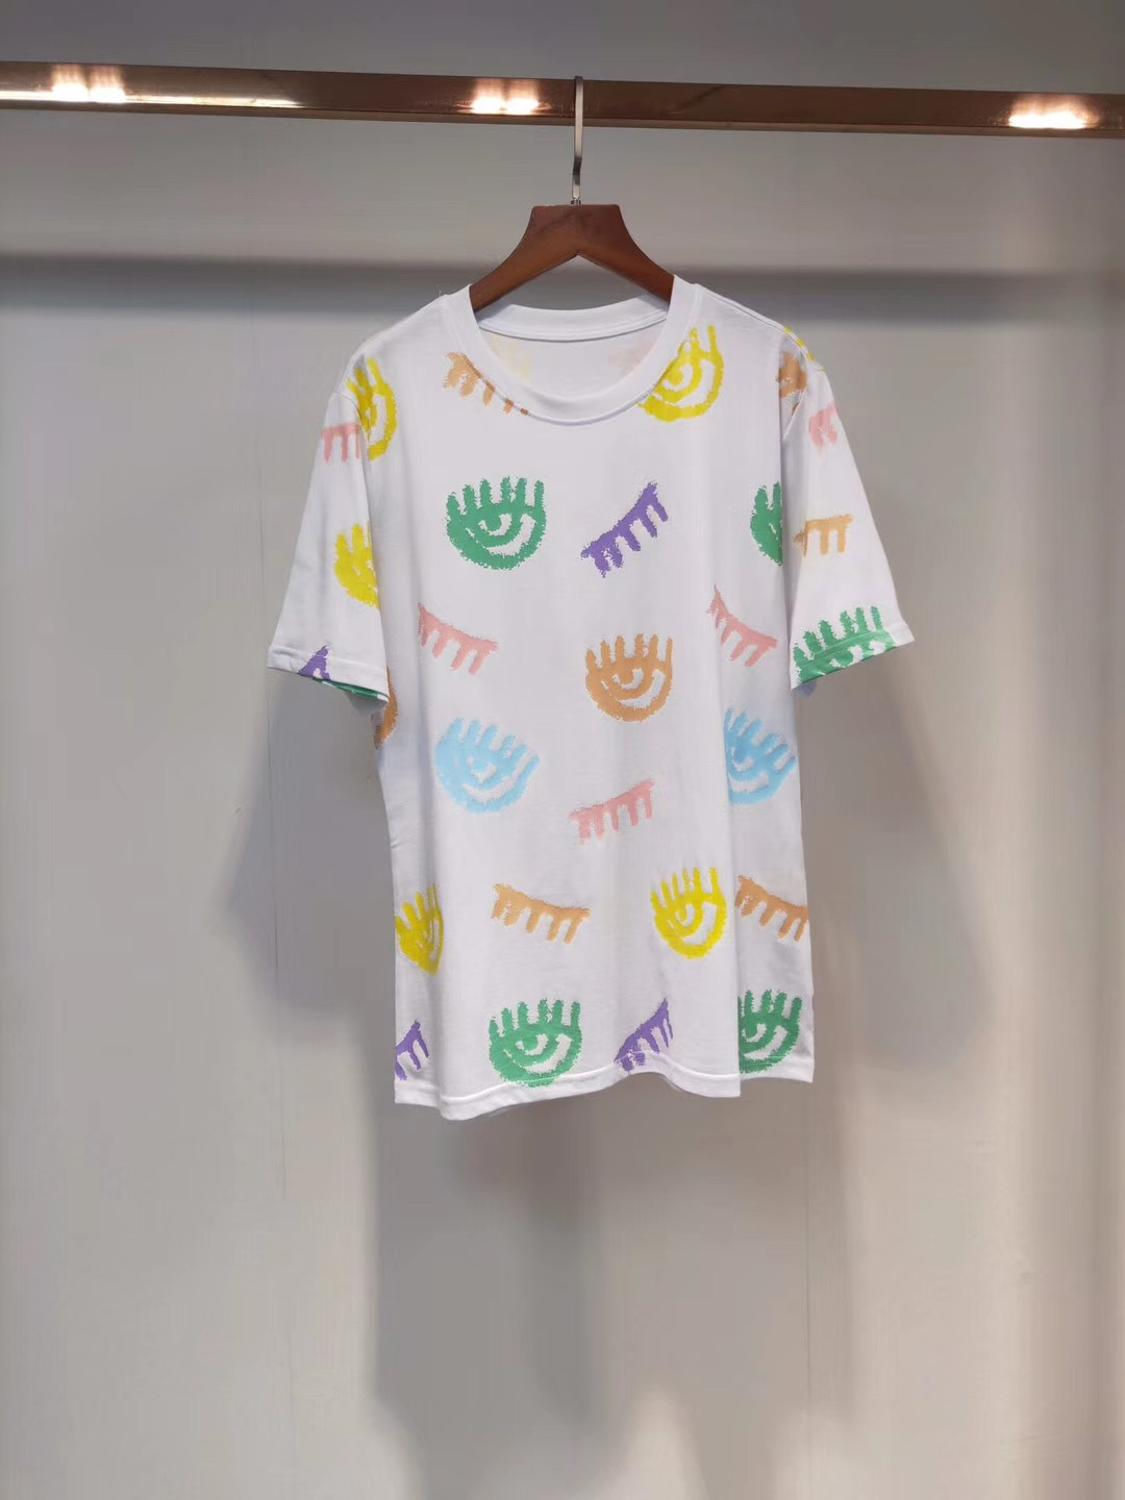 2020  Summer New Fashion Women T Shirts Cotton Chiara Ferragni Sequins Acne Style Men T-Shirts 9